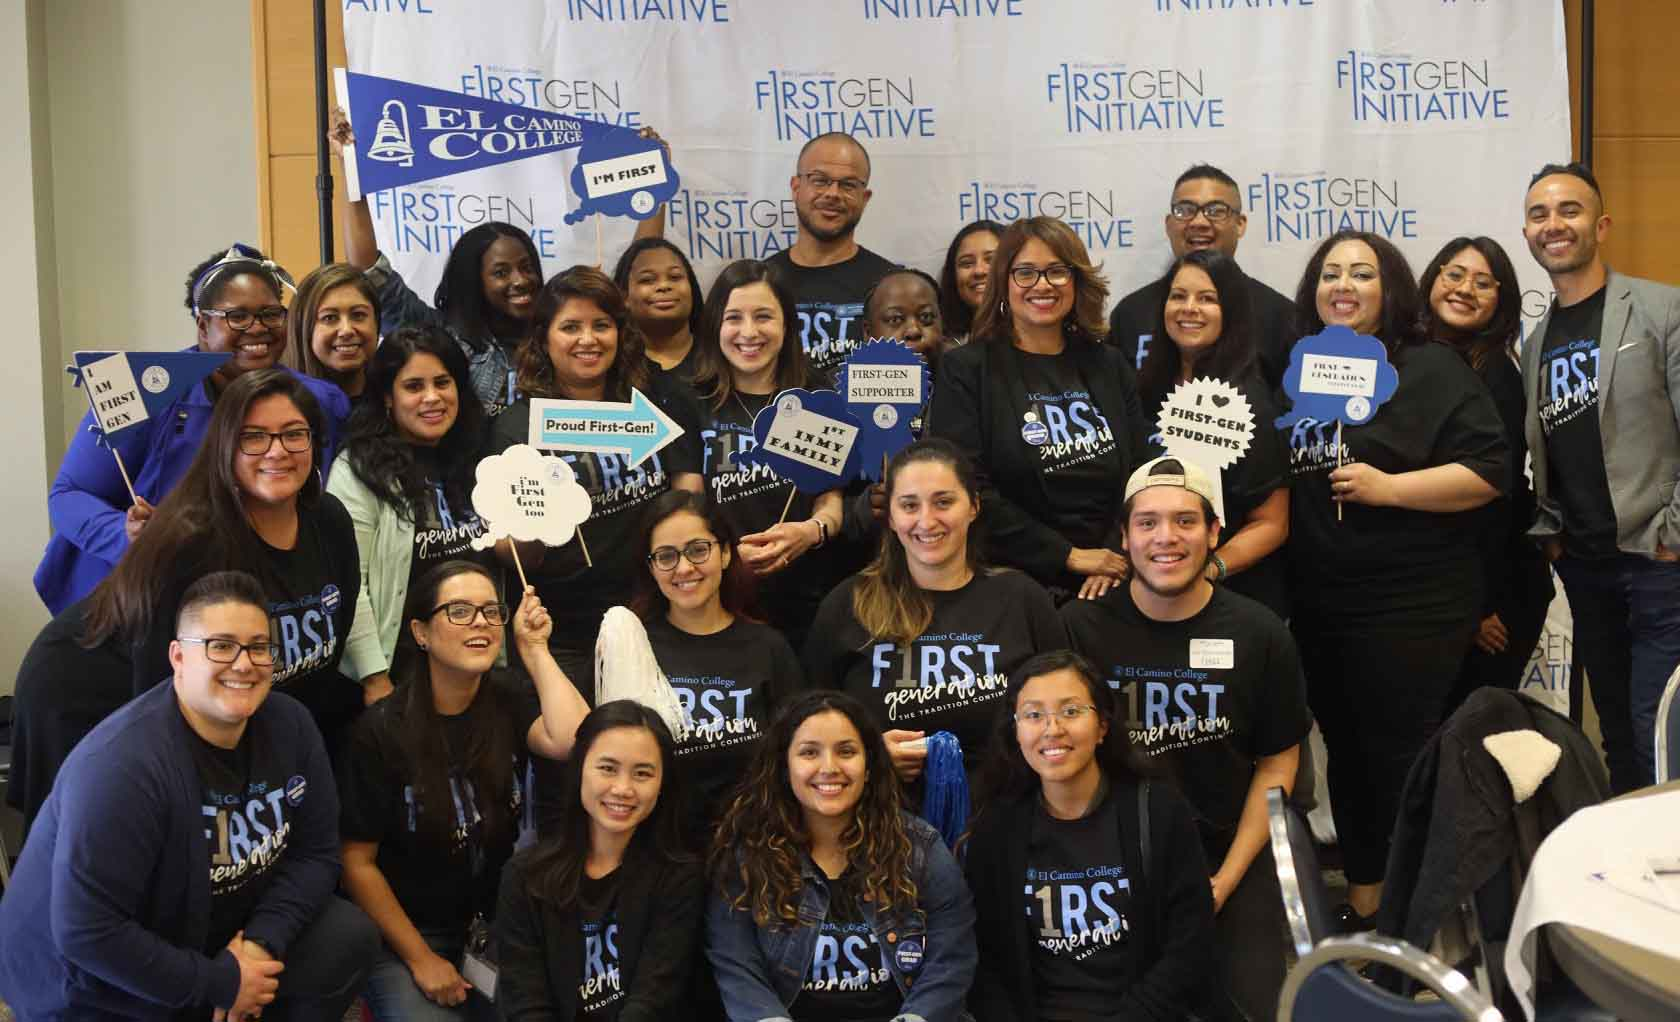 El Camino College will be the only community college in the leadership component of a nationwide program designed to support the success of first-generation college students.